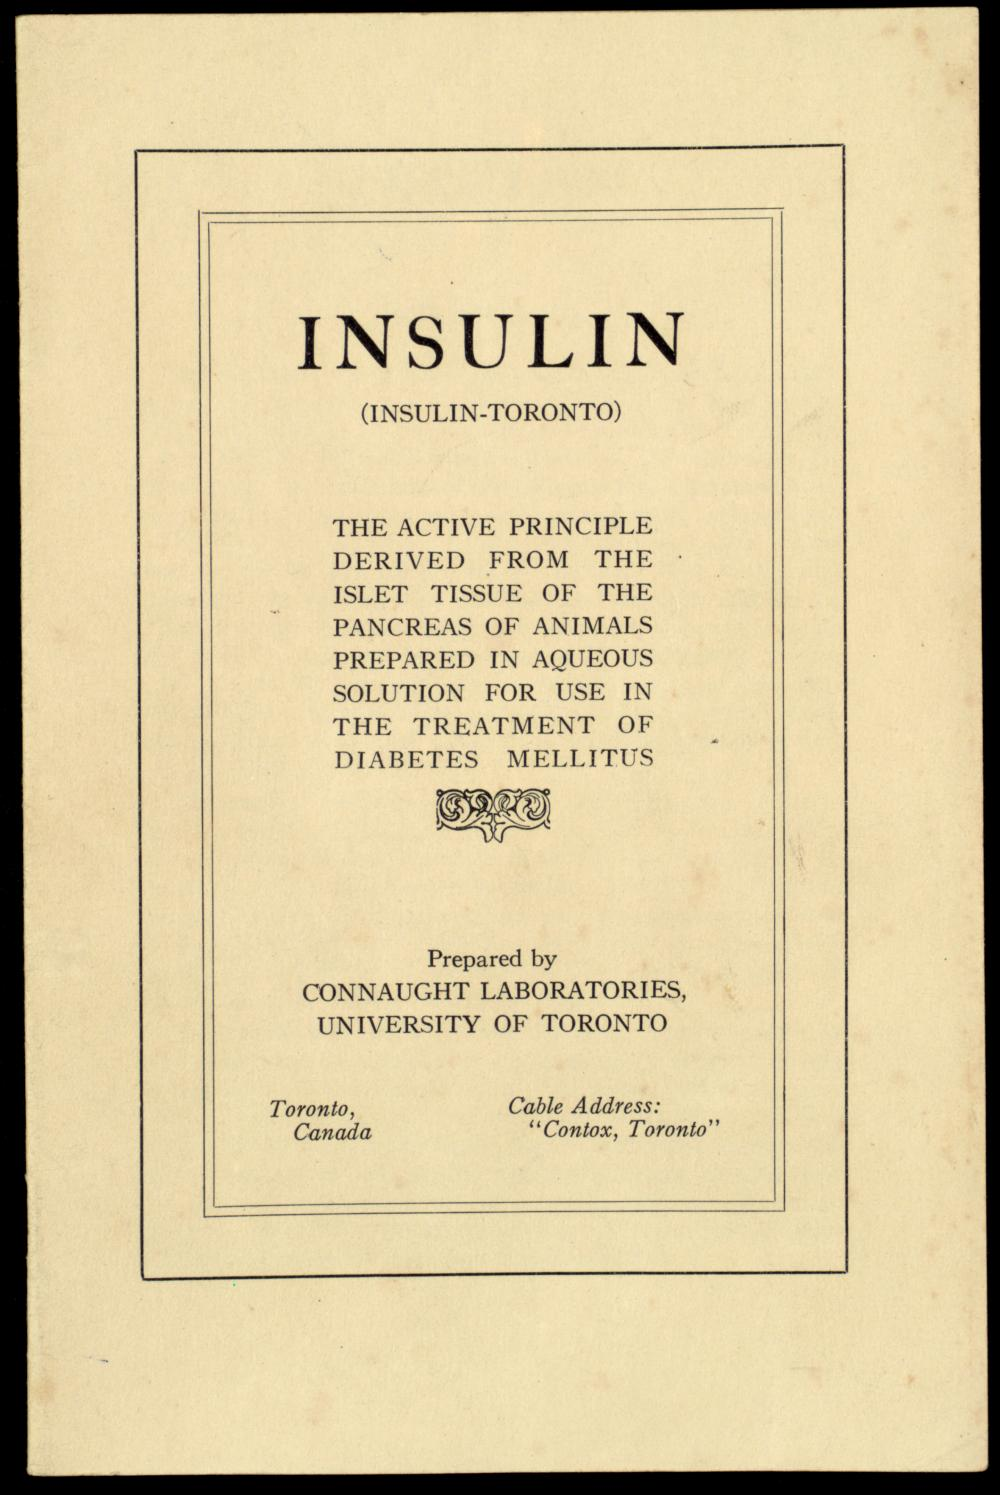 The new Connaught Laboratories name is on the cover of this comprehensive Insulin information booklet, published in late 1923.